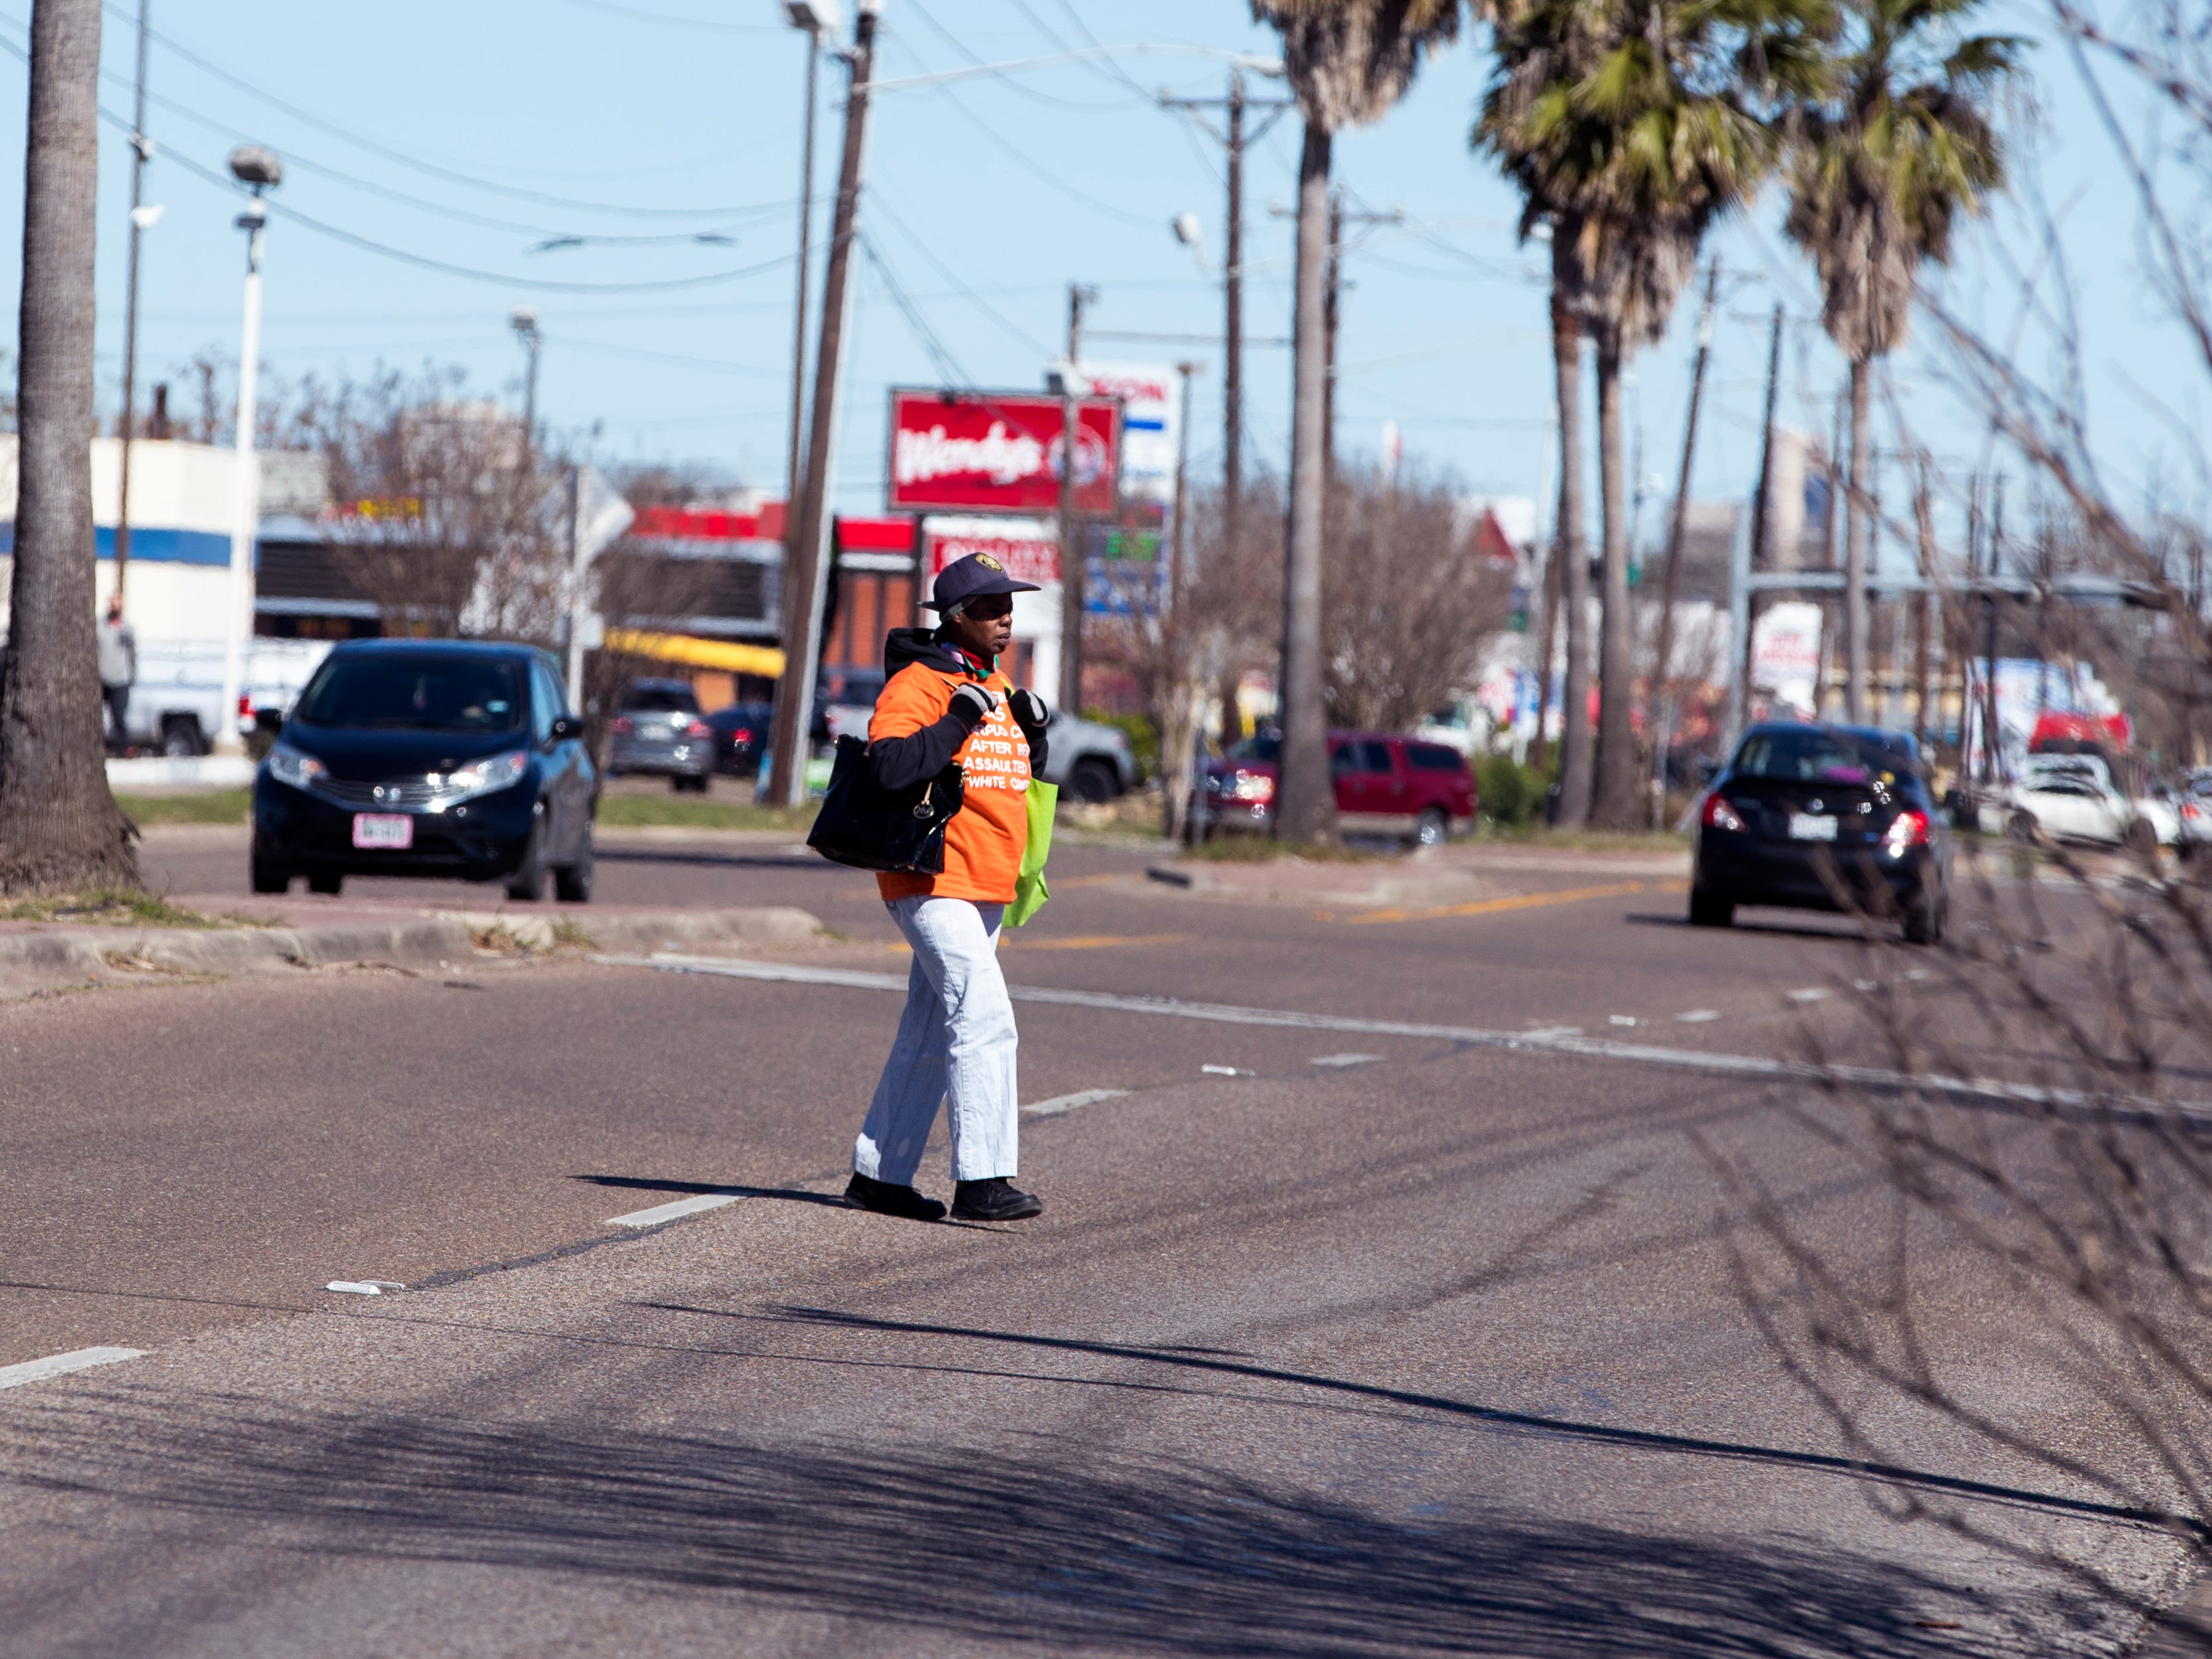 A man crosses in the middle of the street in the 4200 block of Ayers Street on Jan. 29, 2019. Statistics from the Corpus Christi Police Department show that a high number of auto-pedestrian accidents take place between the blocks of 4100 and 4900 Ayers Street.